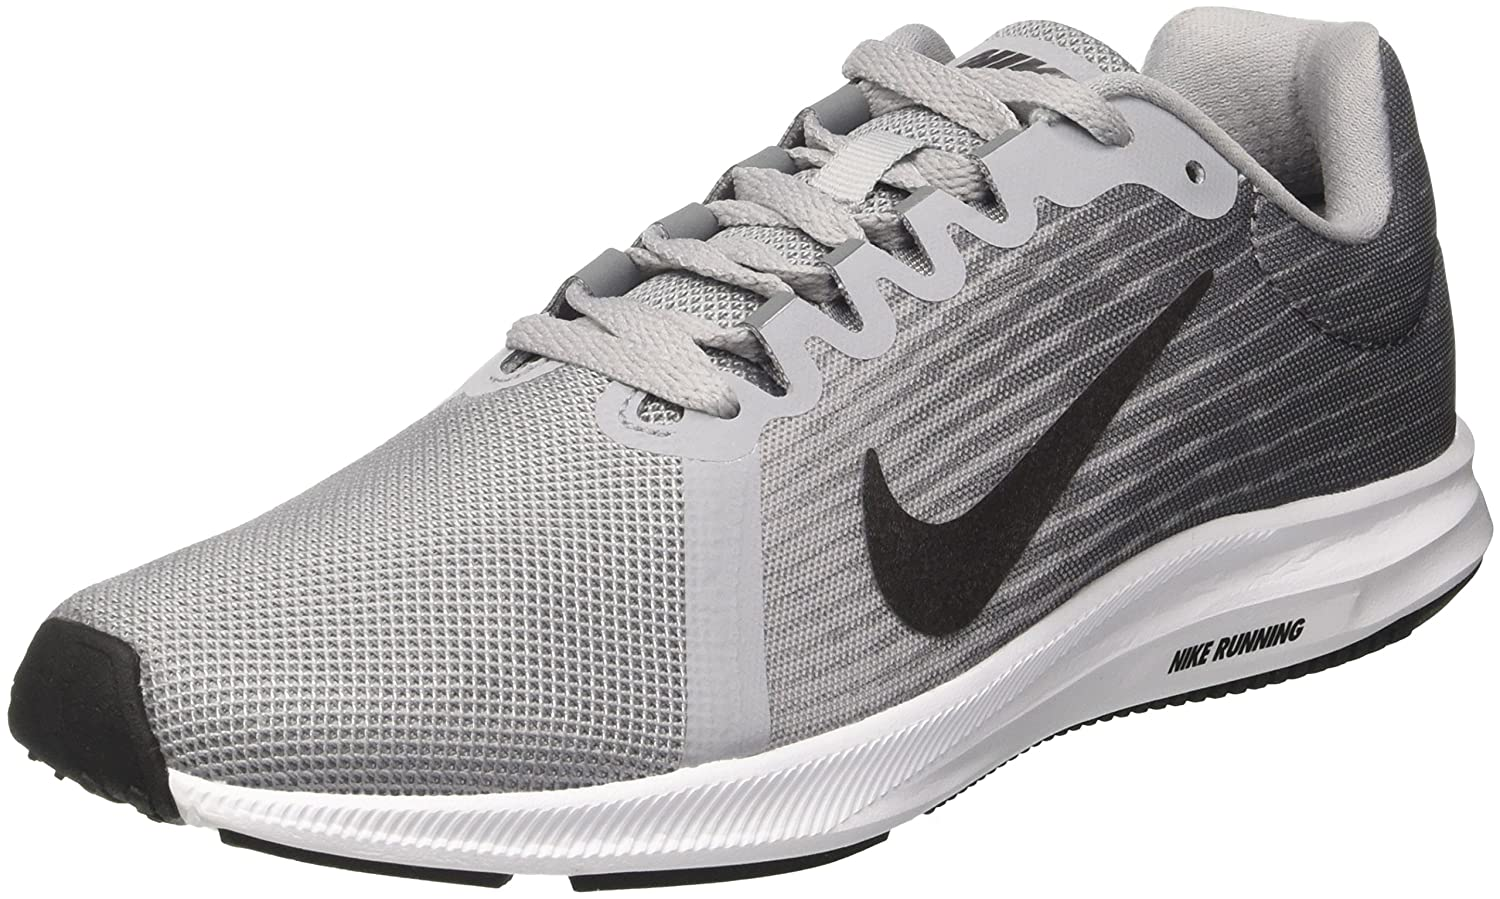 Nike Women s Downshifter 8 Running Shoe, Wolf Metallic Dark Cool Grey, 7.5 Regular US